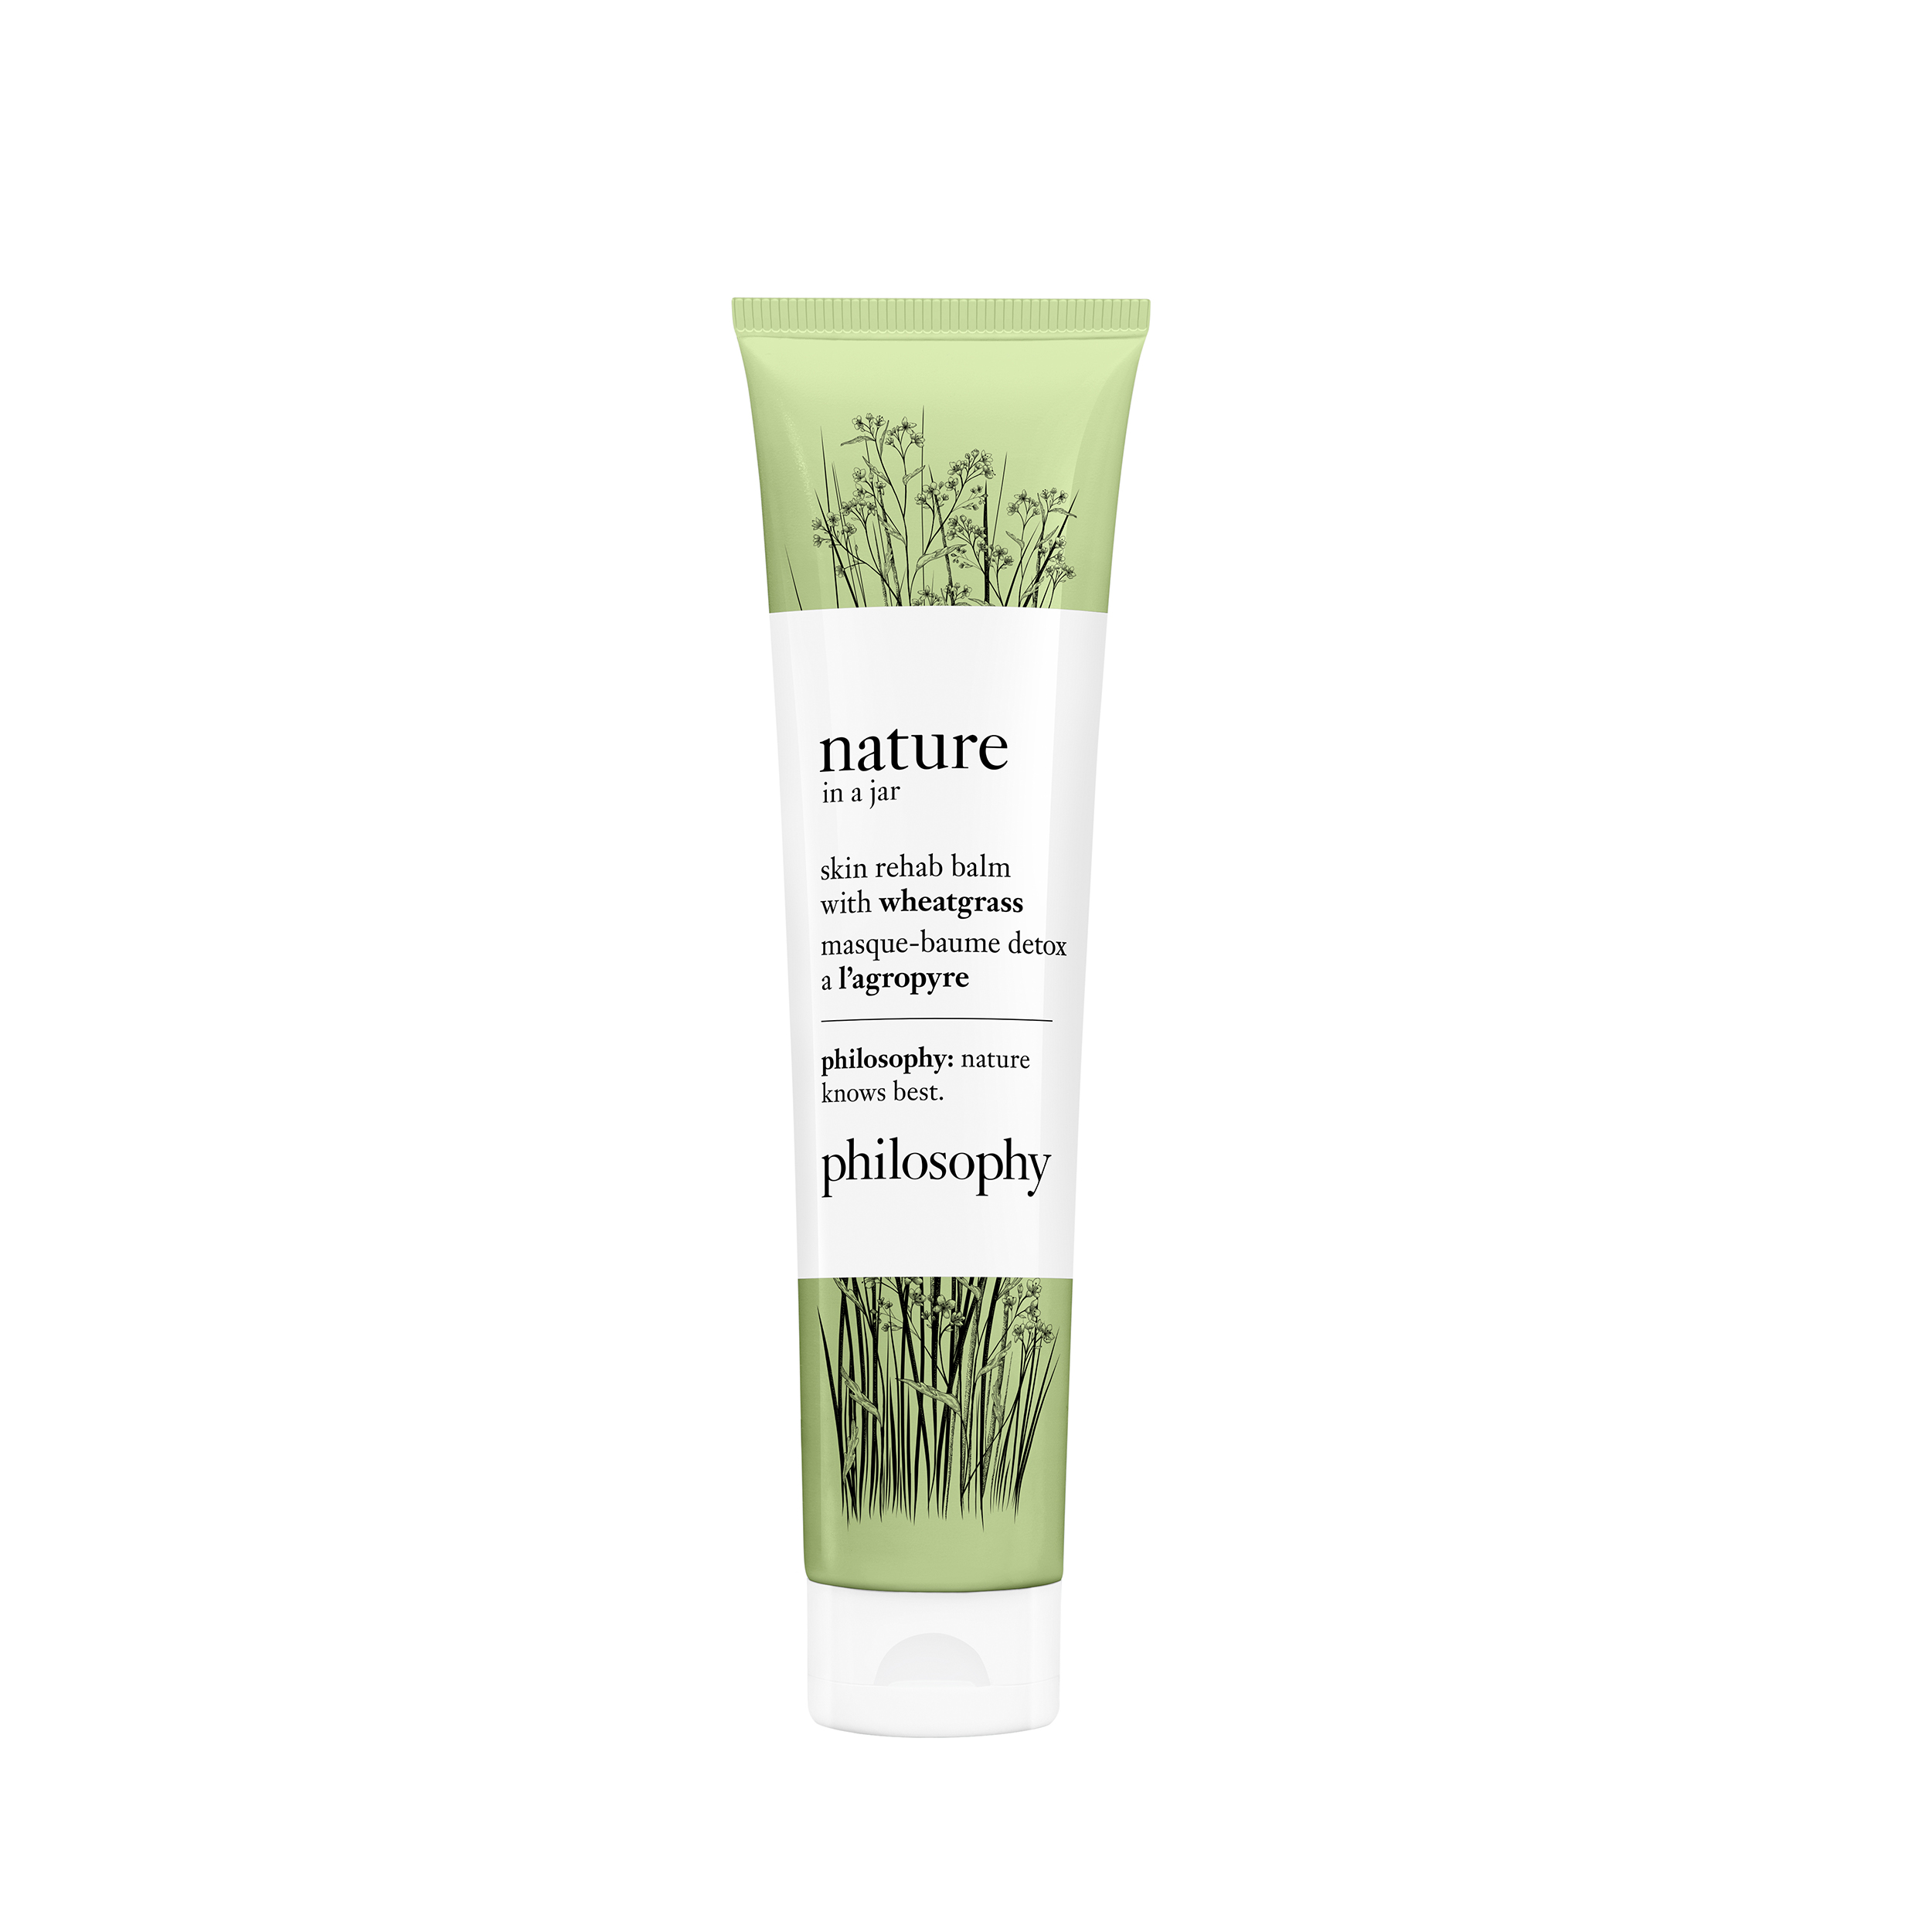 nature in a jar balm mask with wheatgrass